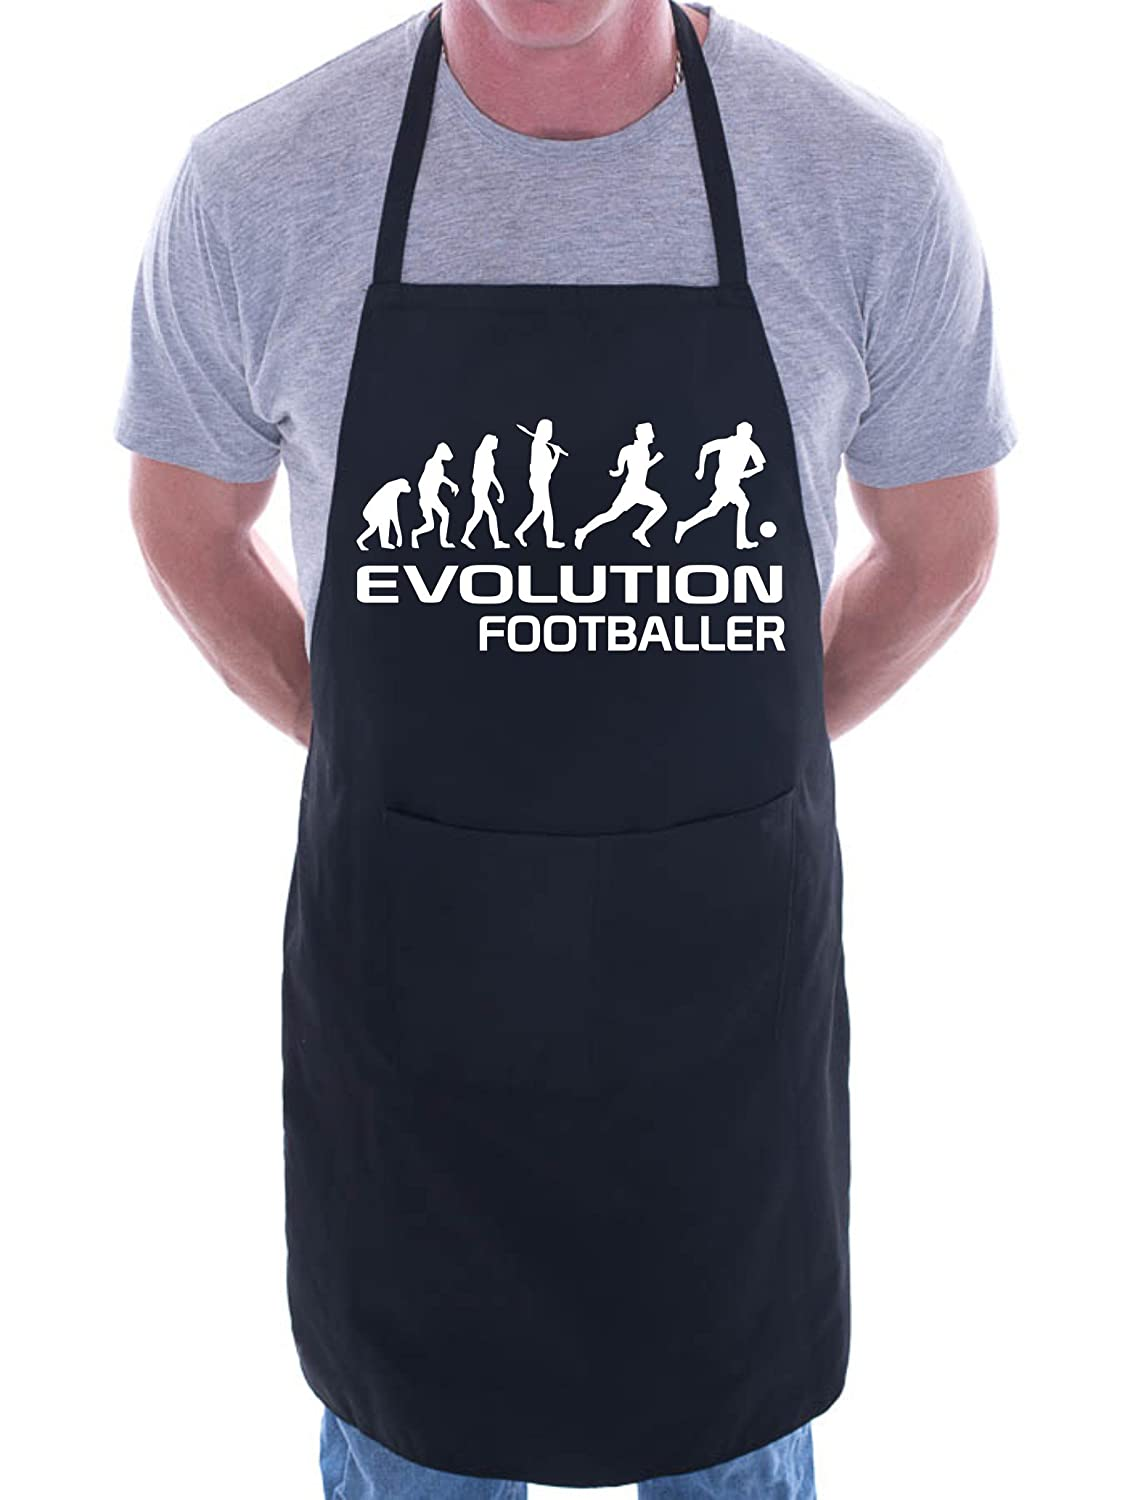 Evolution Of Footballer Football BBQ Cooking Funny Novelty Apron